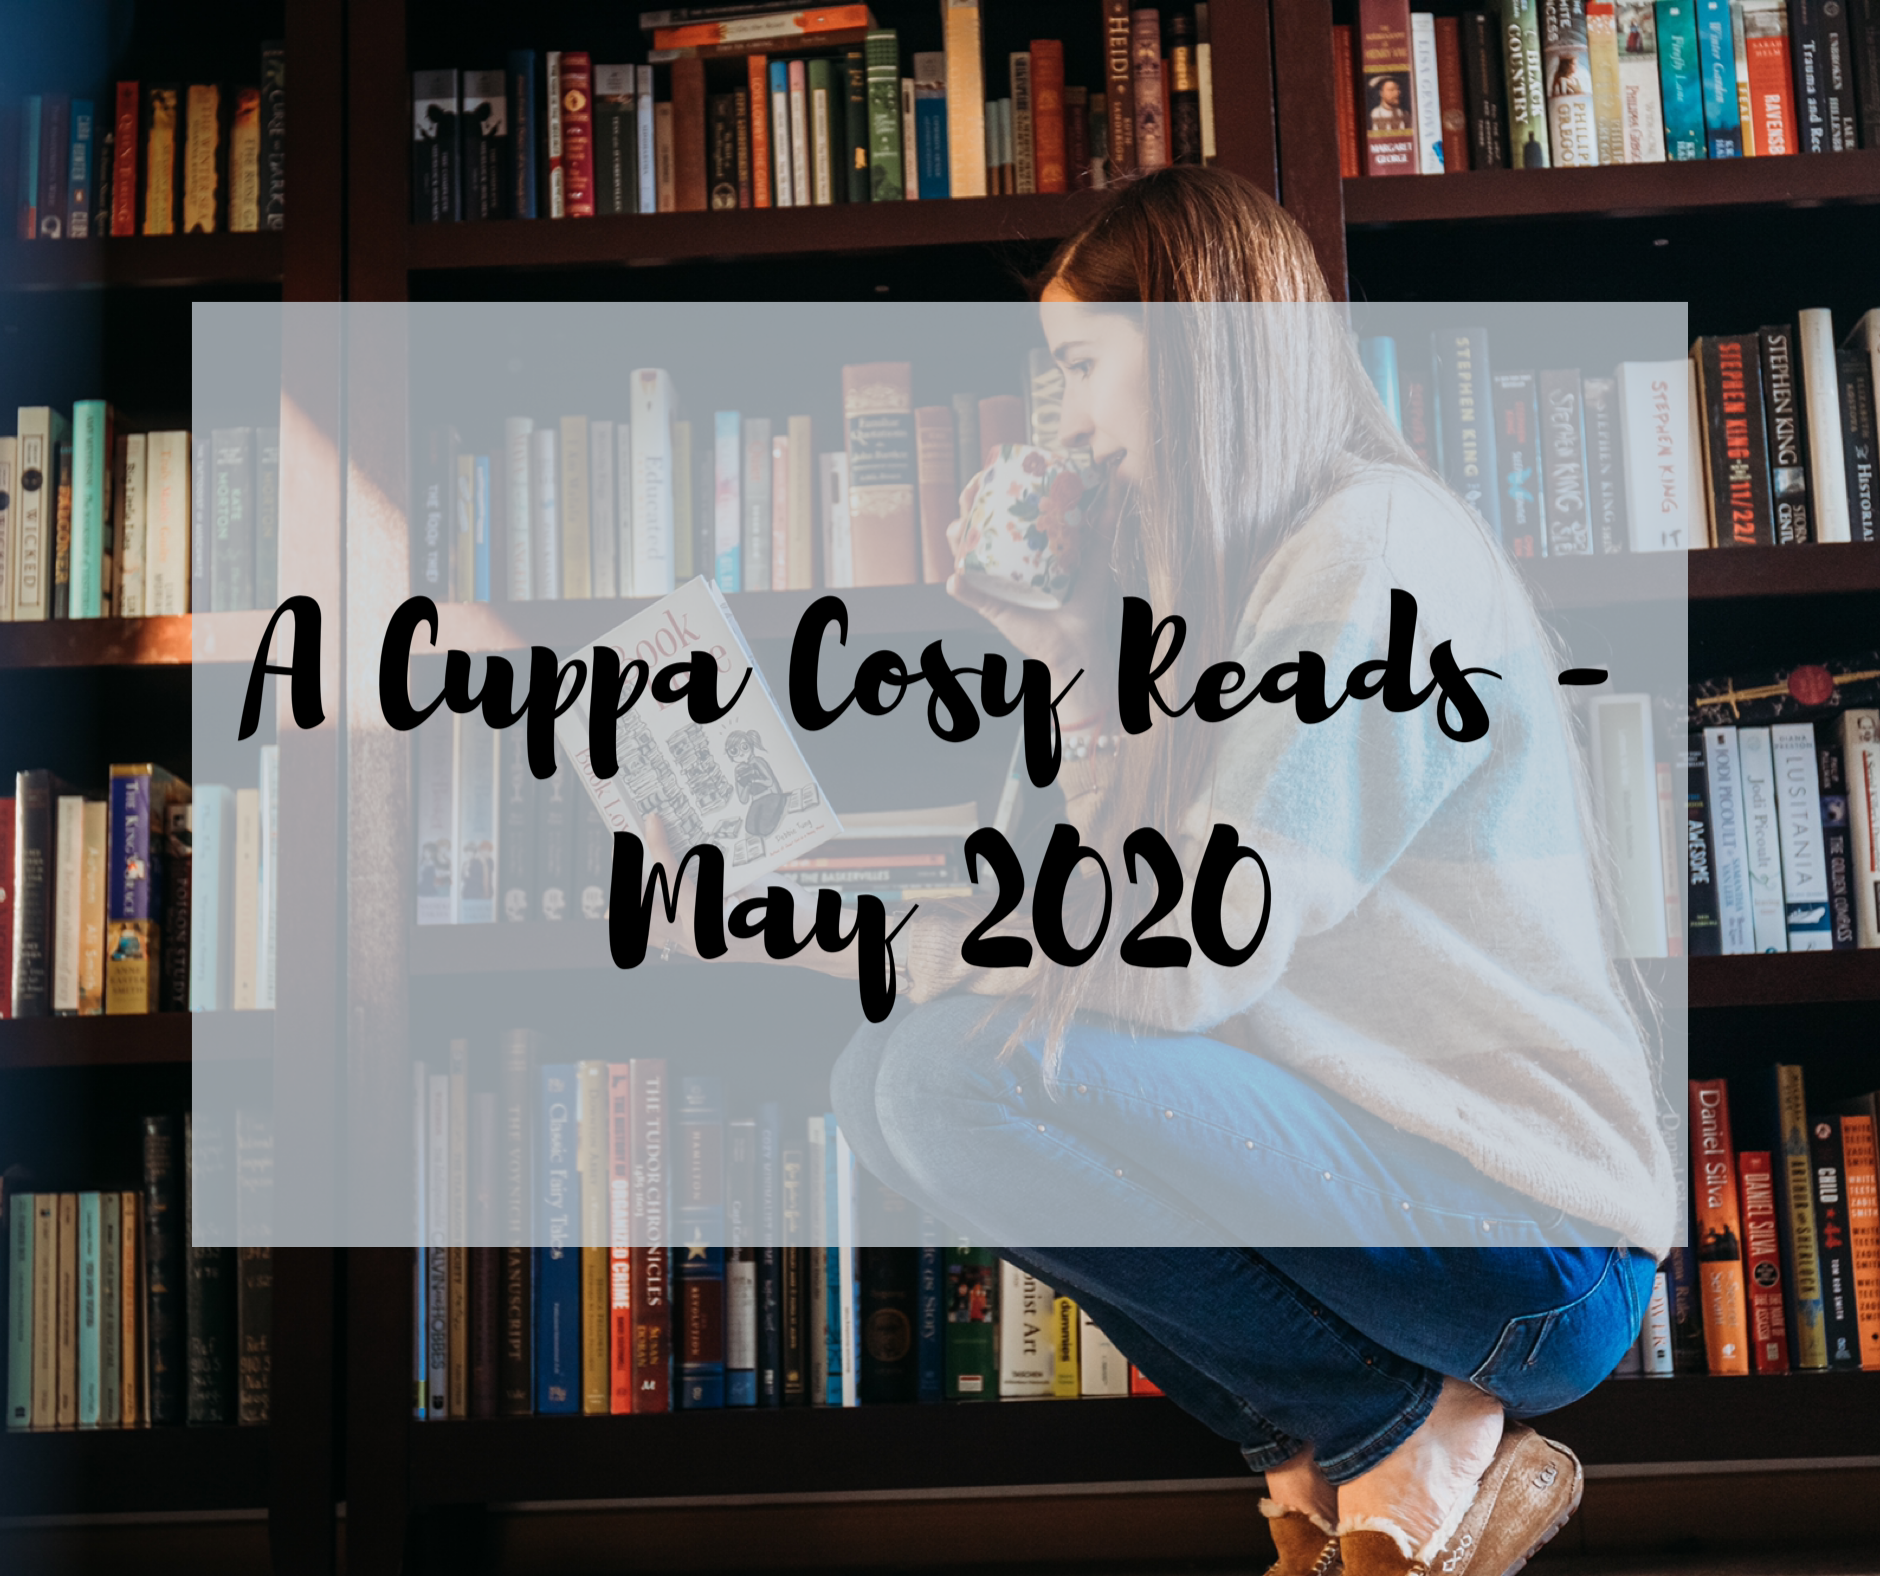 A Cuppa Cosy Reads - February 2022